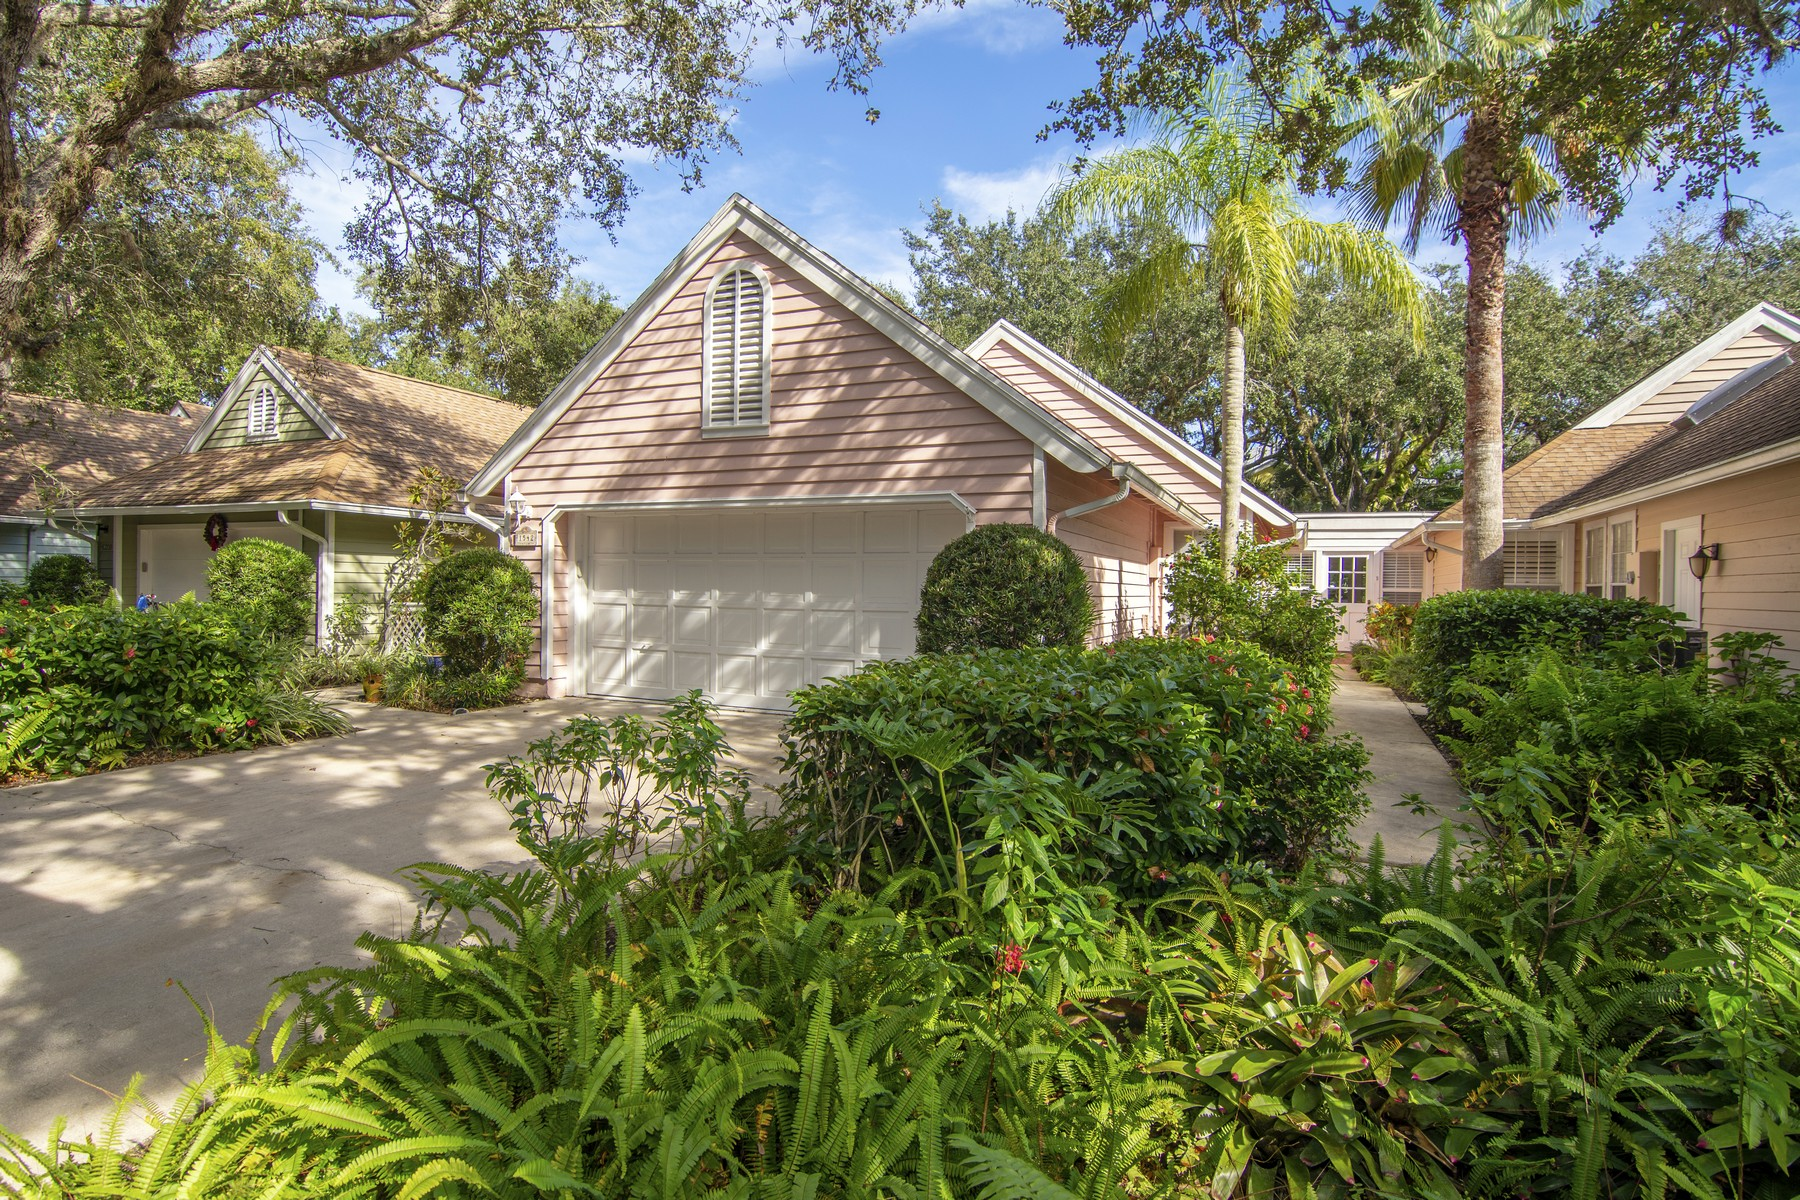 House for Sale at Sea Oaks River Home With Update Kitchen 1542 Sabal Court Vero Beach, Florida 32963 United States